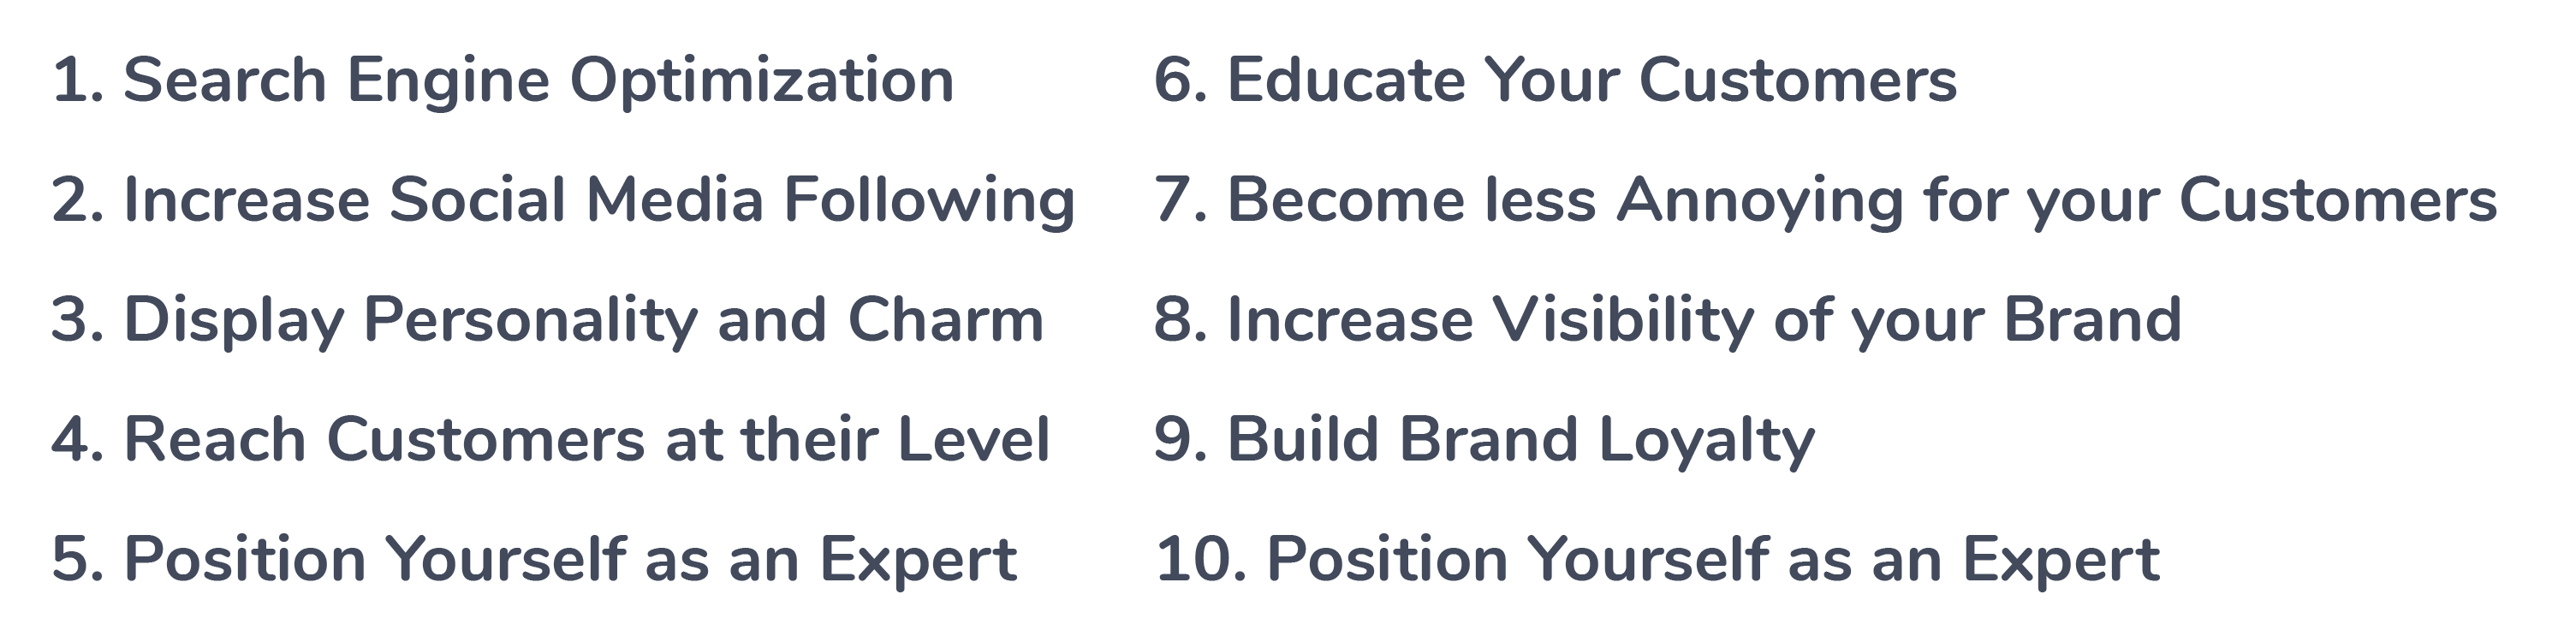 What are the Top Ten Benefits of Content Marketing?